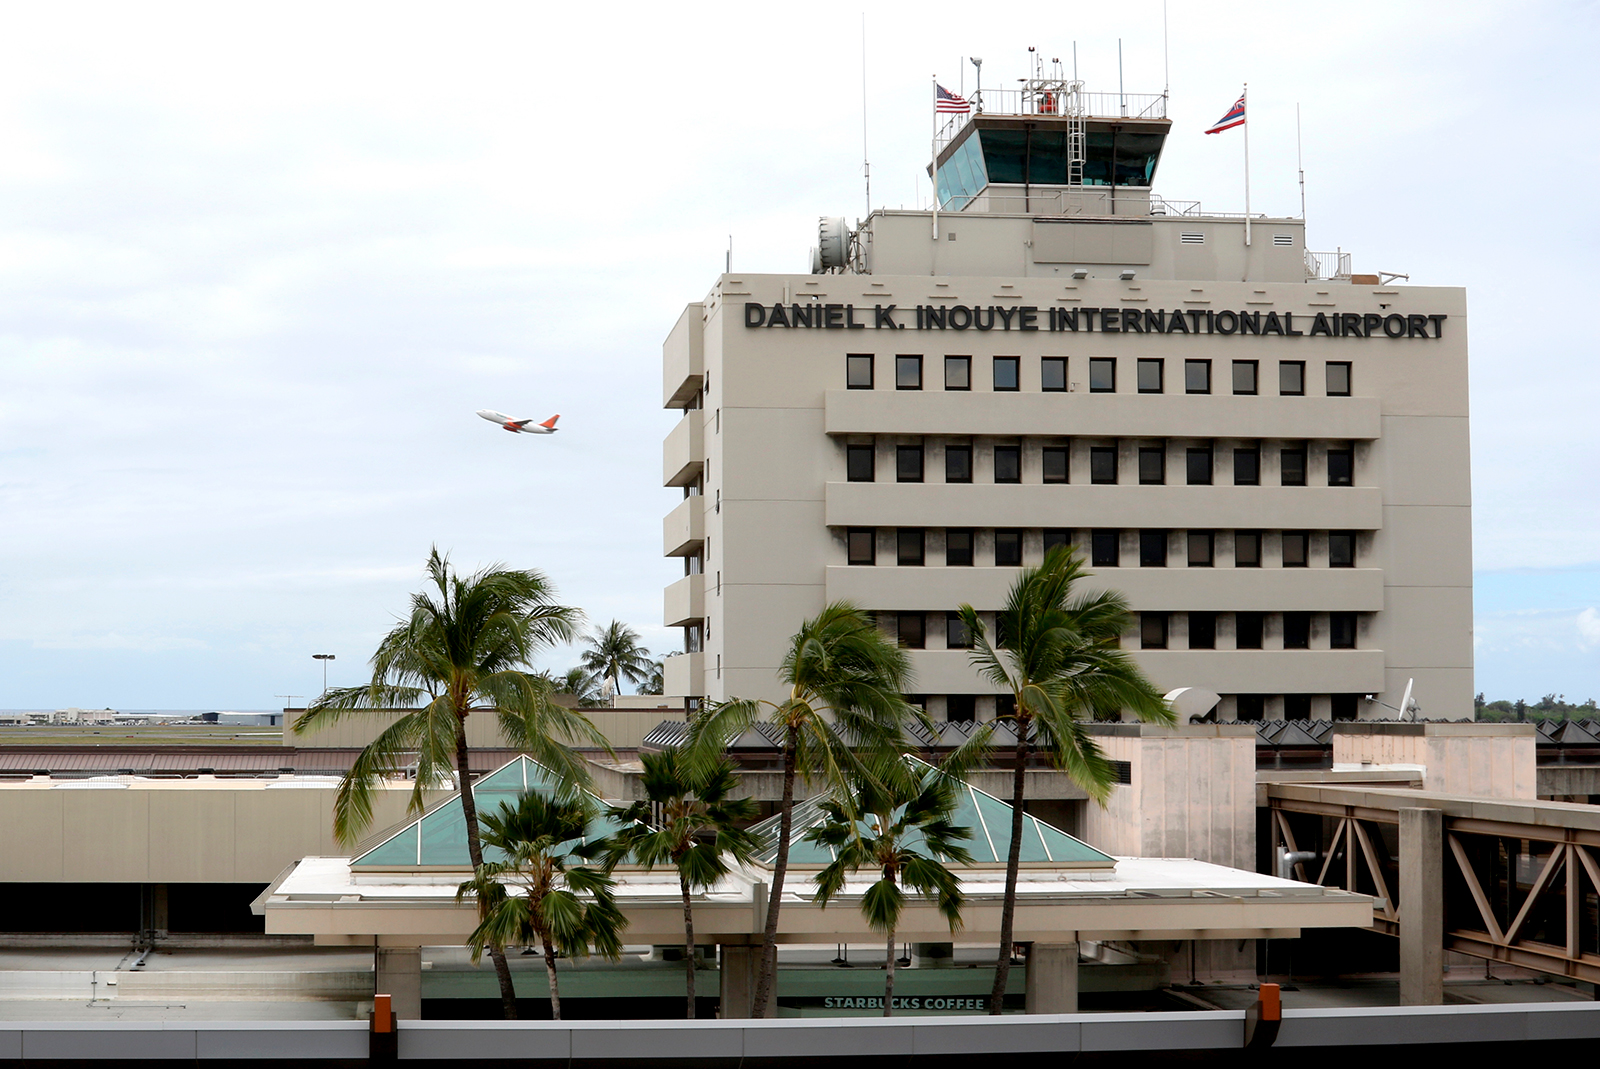 A plane takes off over the international airport in Honolulu on April 21.